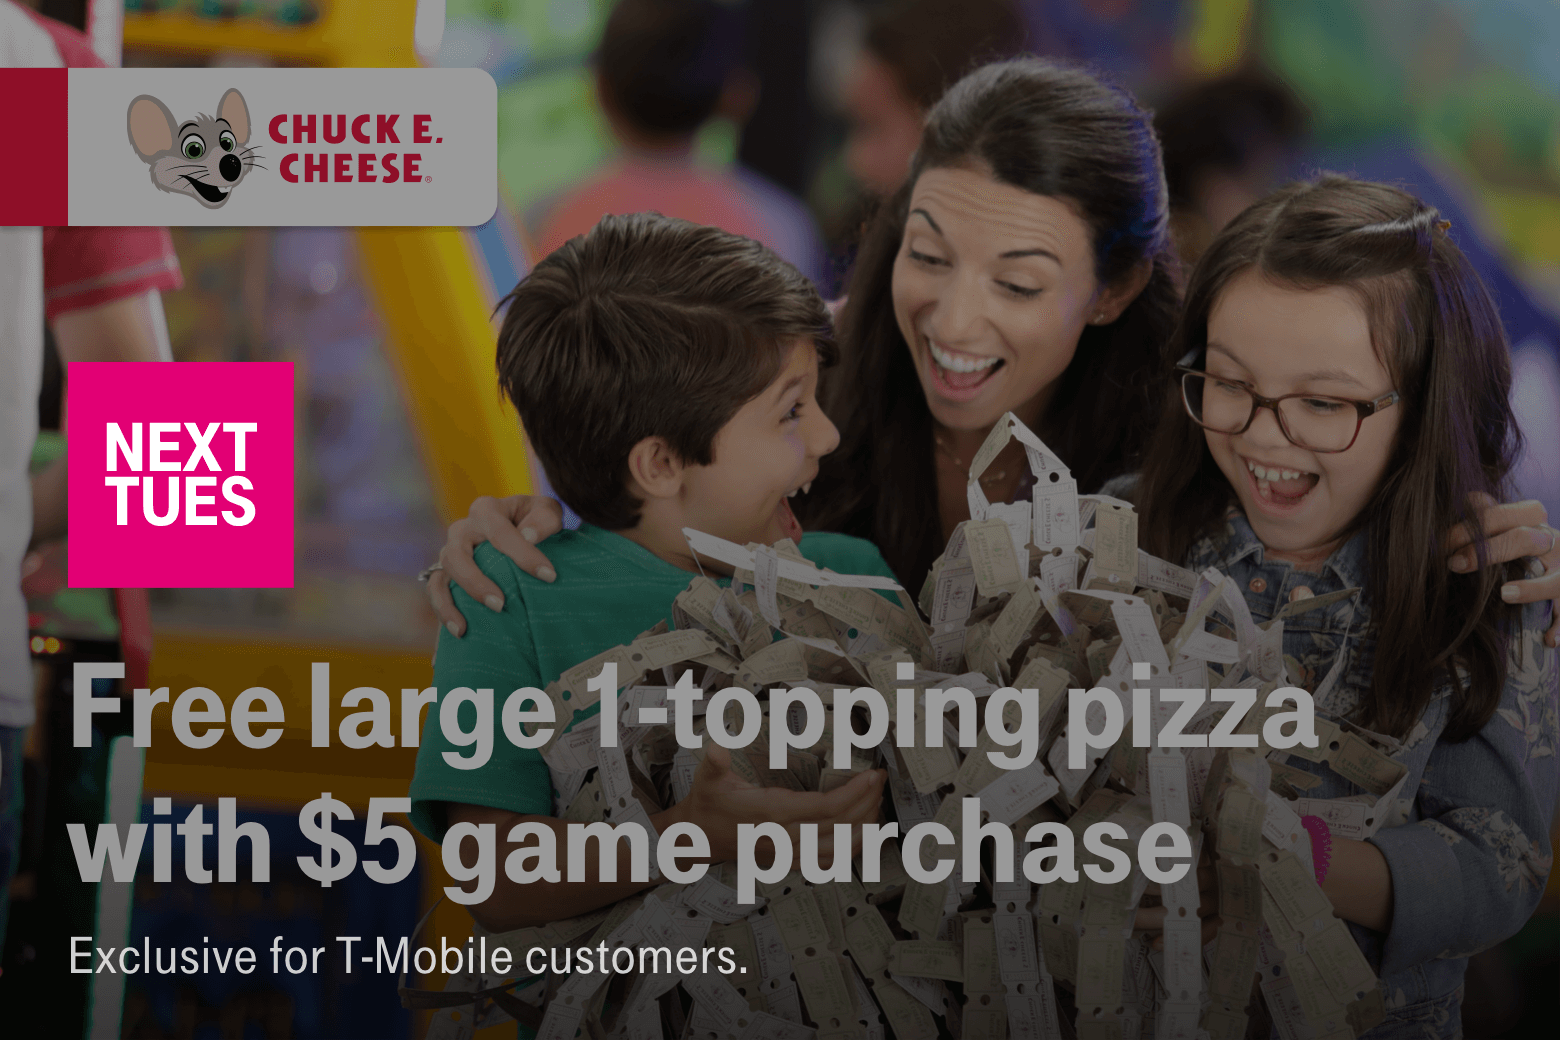 Chuck E. Cheese's. Next Tuesday. Free large 1-topping pizza with $5 game purchase. Exclusive for T-Mobile customers.